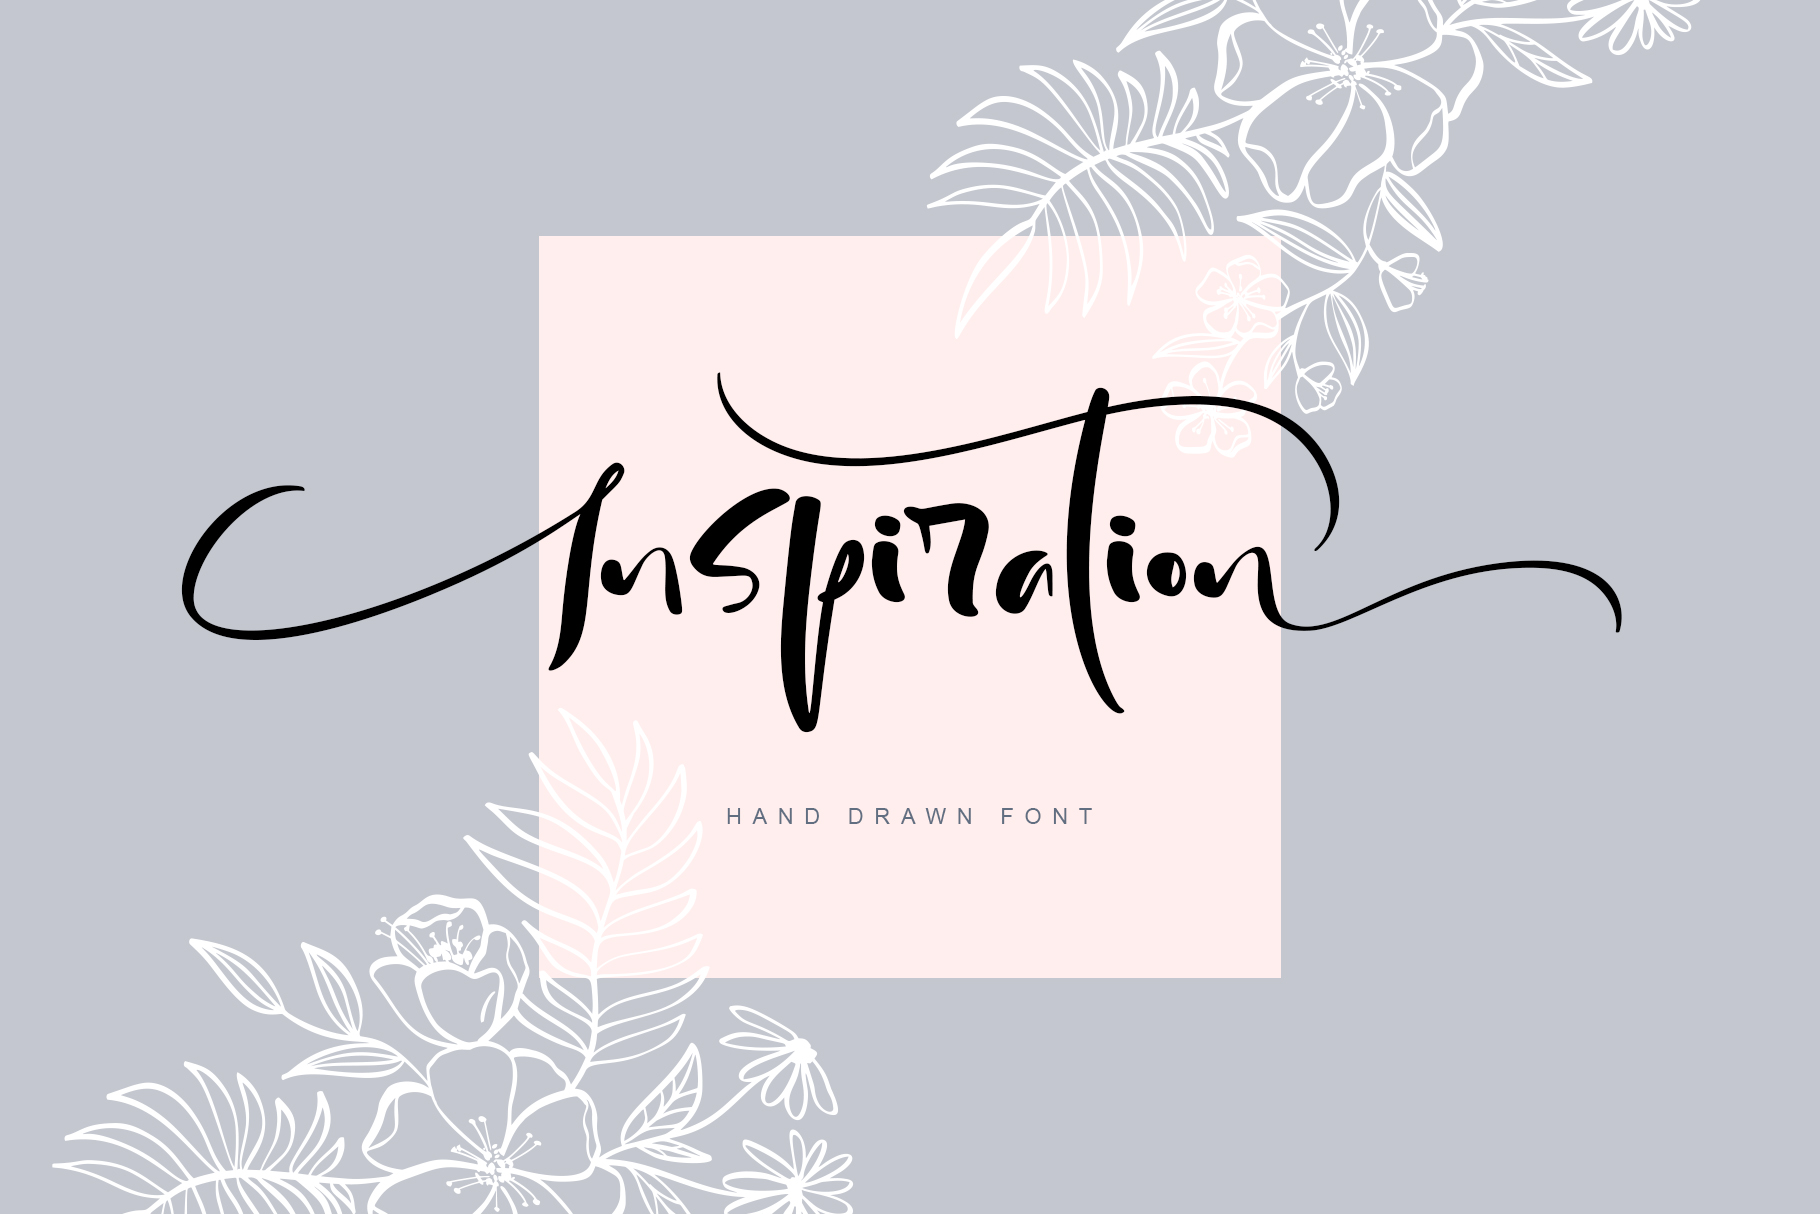 Inspiration Hand Drawn Font example image 1